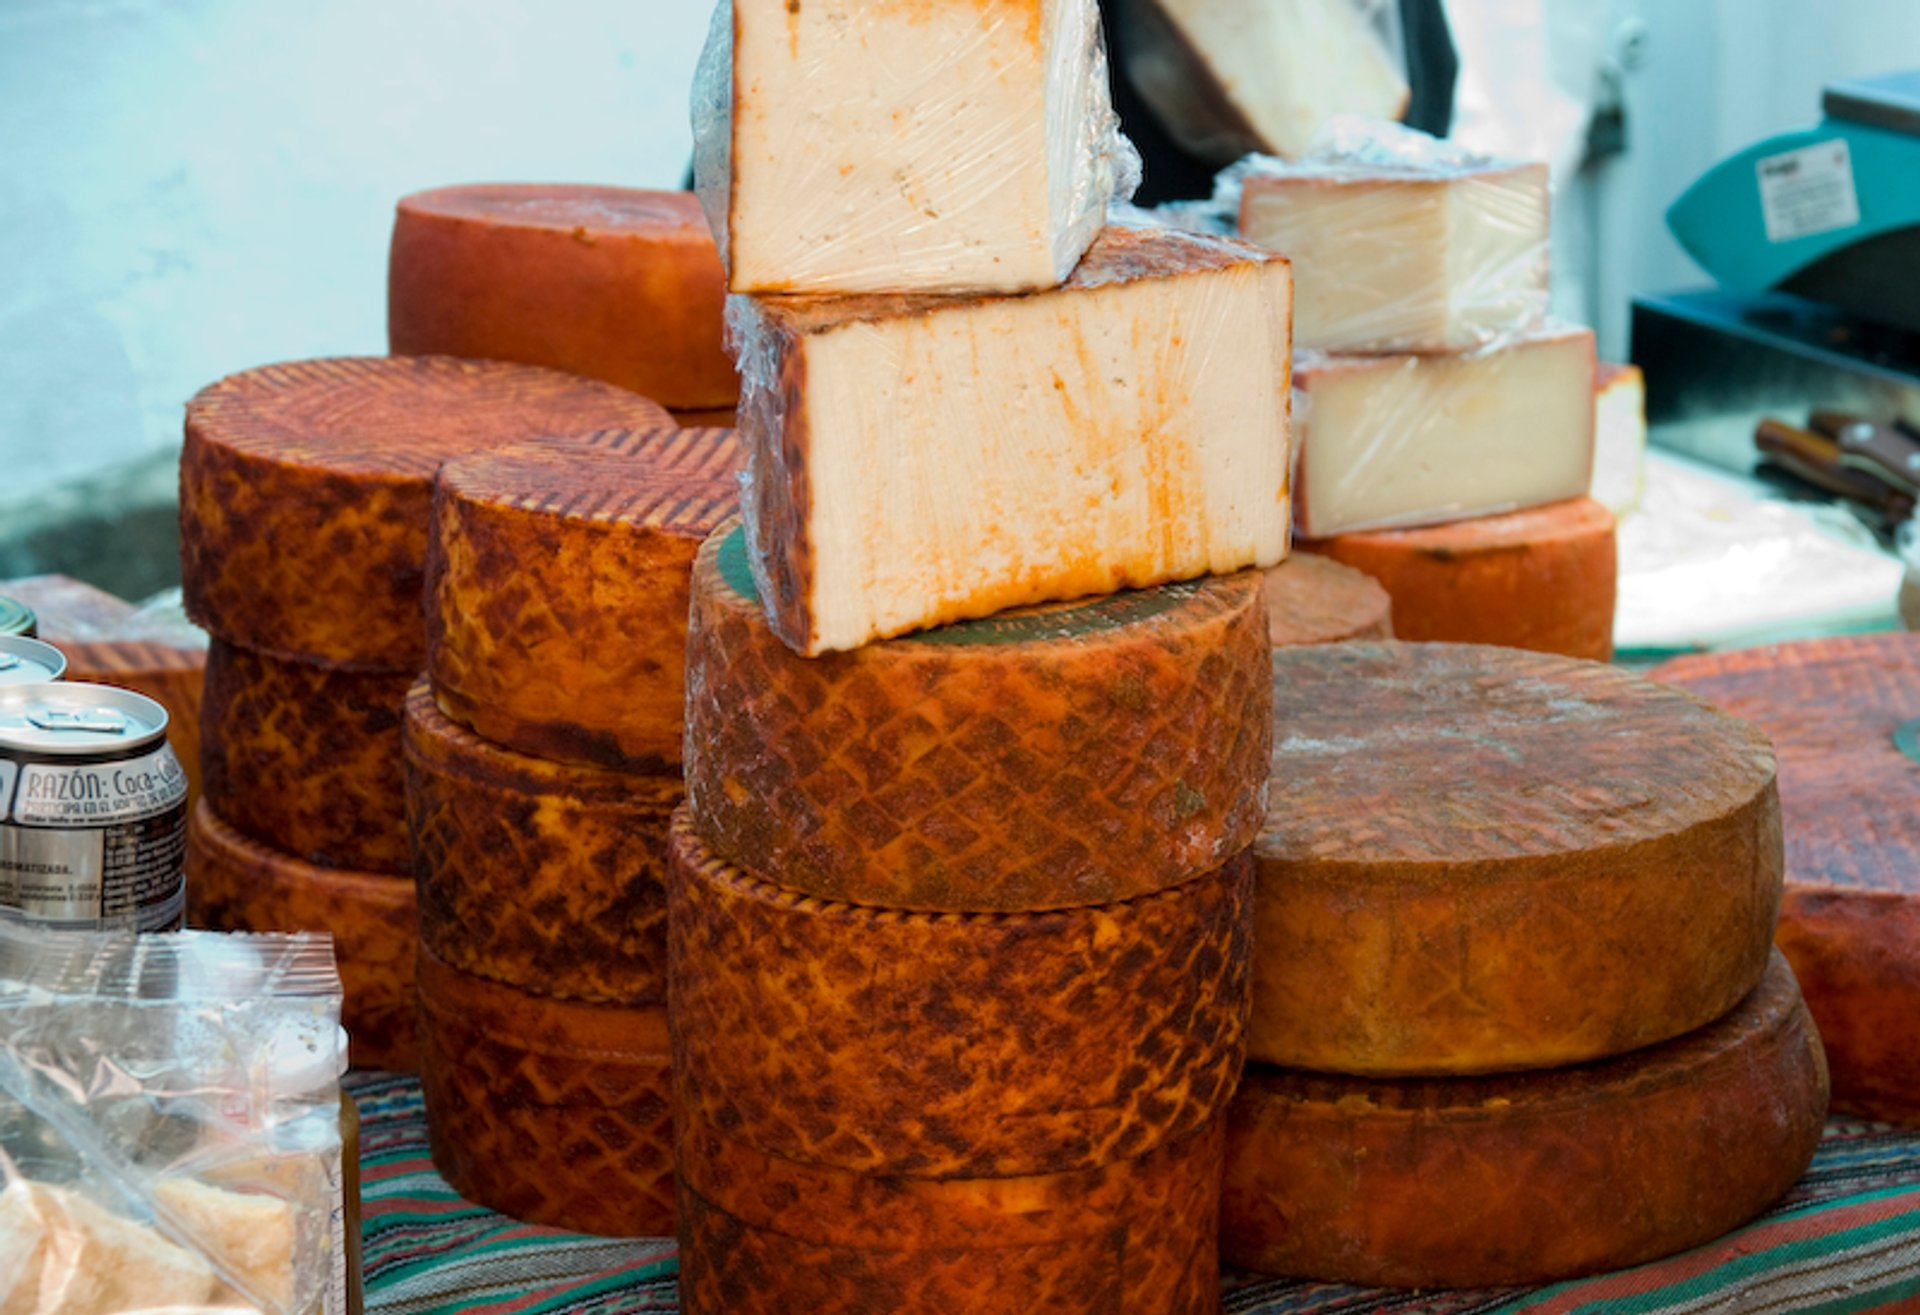 Best time for Cheese Festival (Fiesta del Queso) in Canary Islands 2020